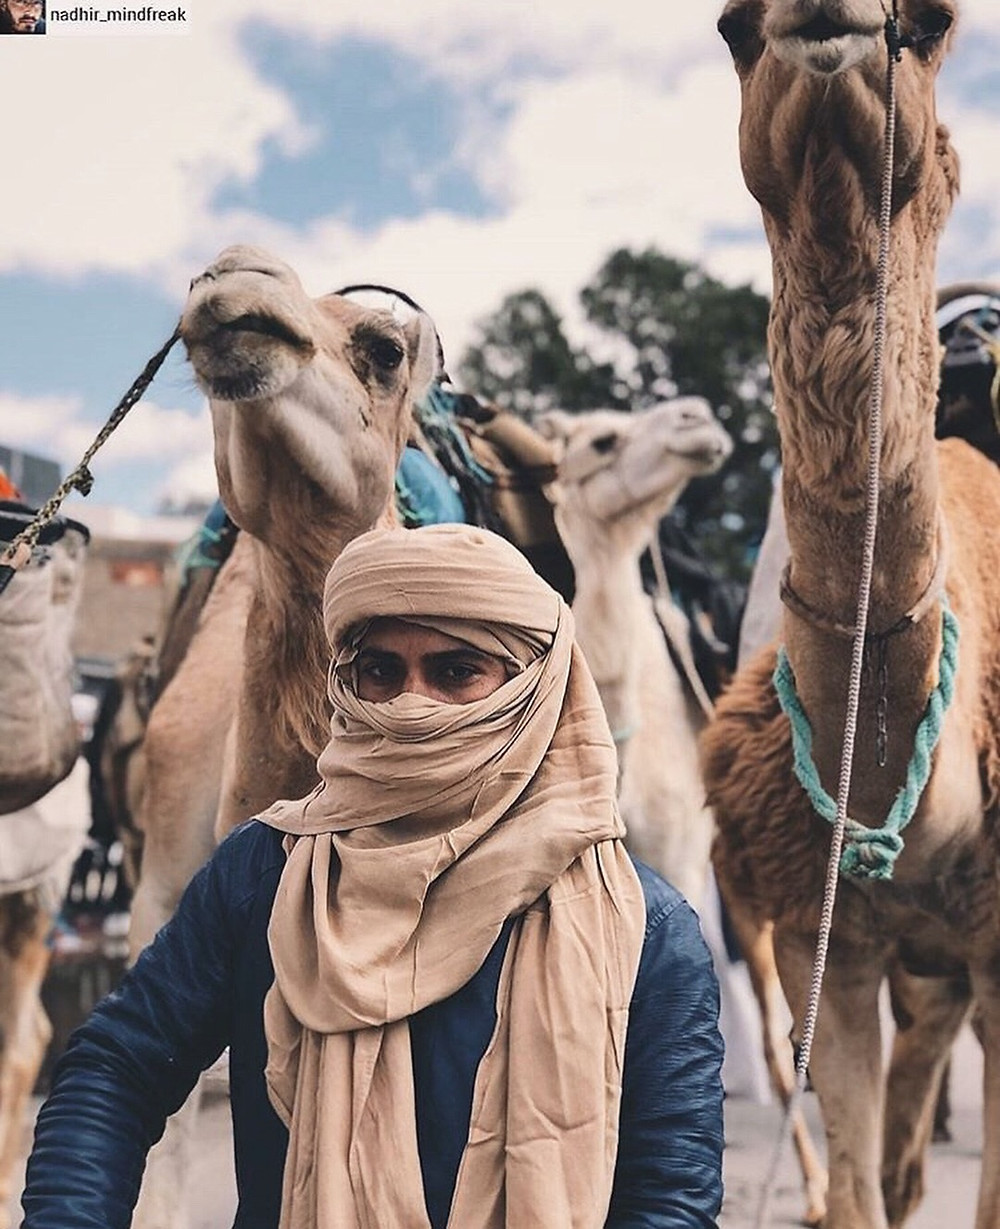 A Tuareg man surrounded by camels